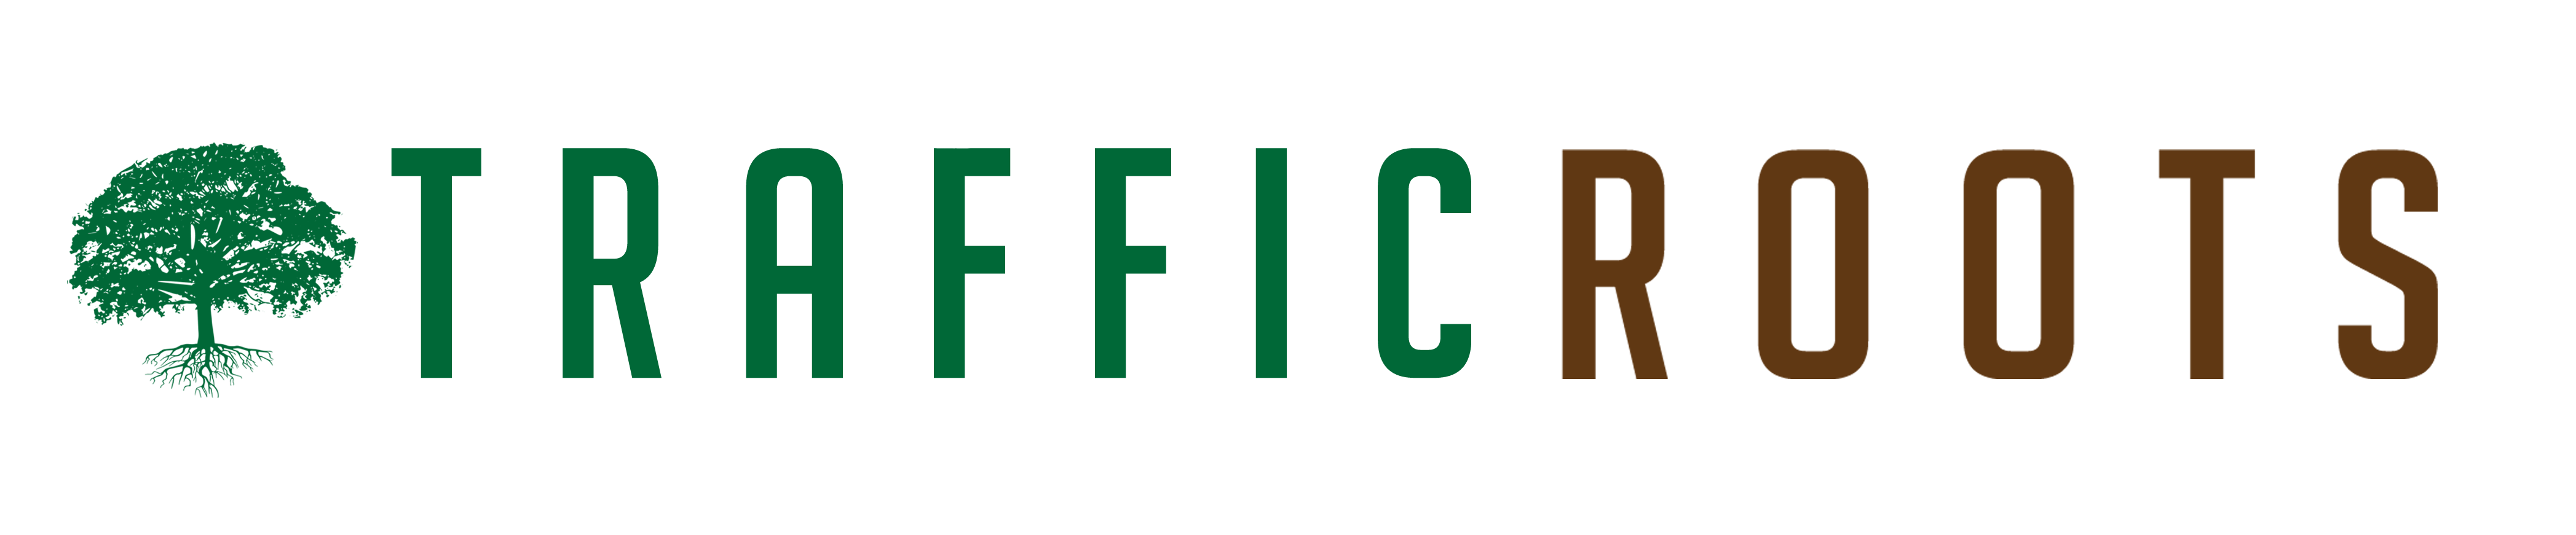 The Traffic Roots cannabis compliant digital advertising platform targets cannabis consumers on mainstream websites